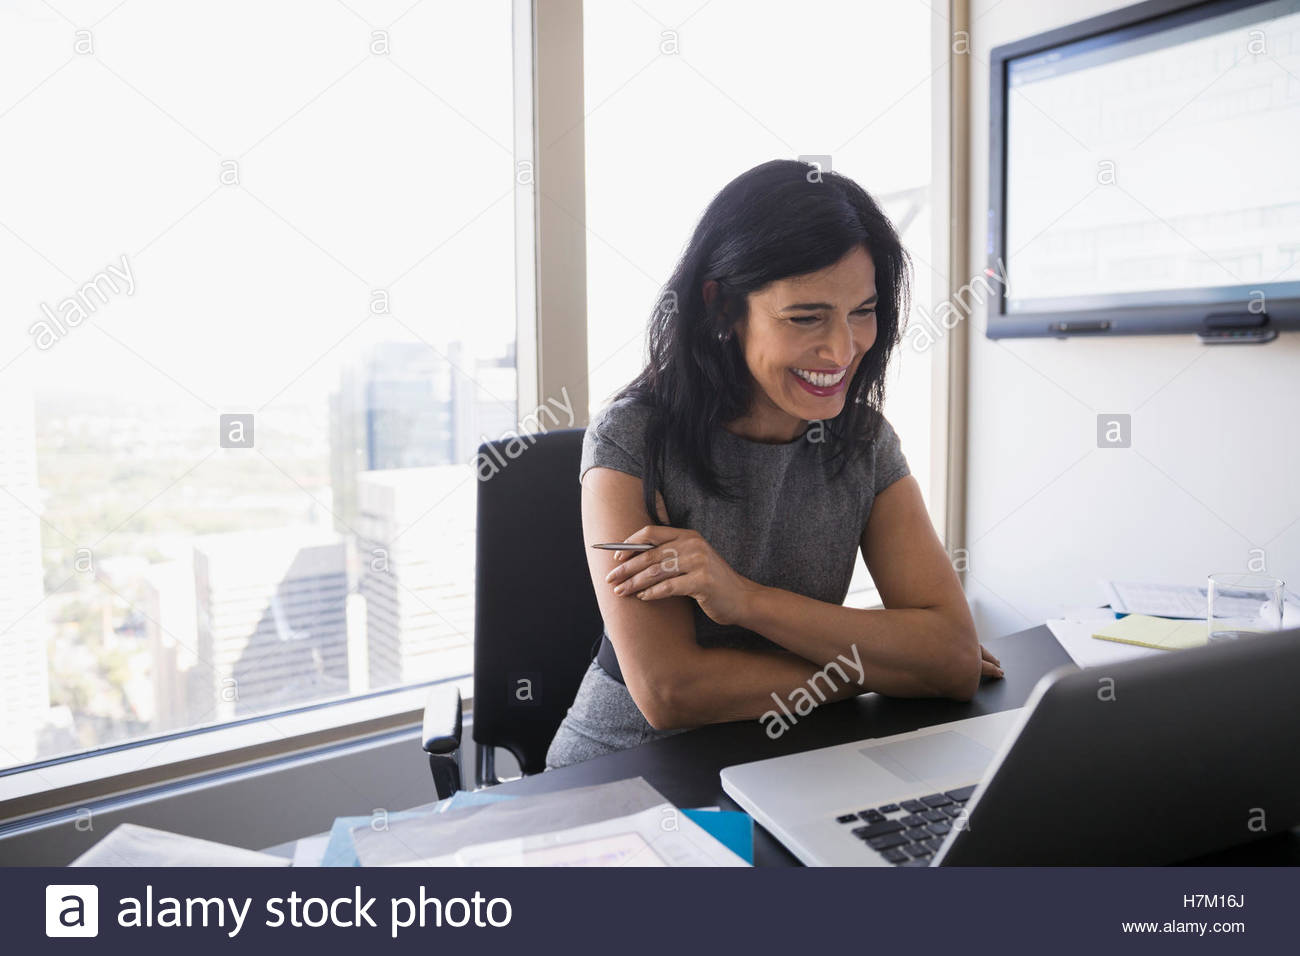 Smiling woman video conferencing at laptop in conference room - Stock Image